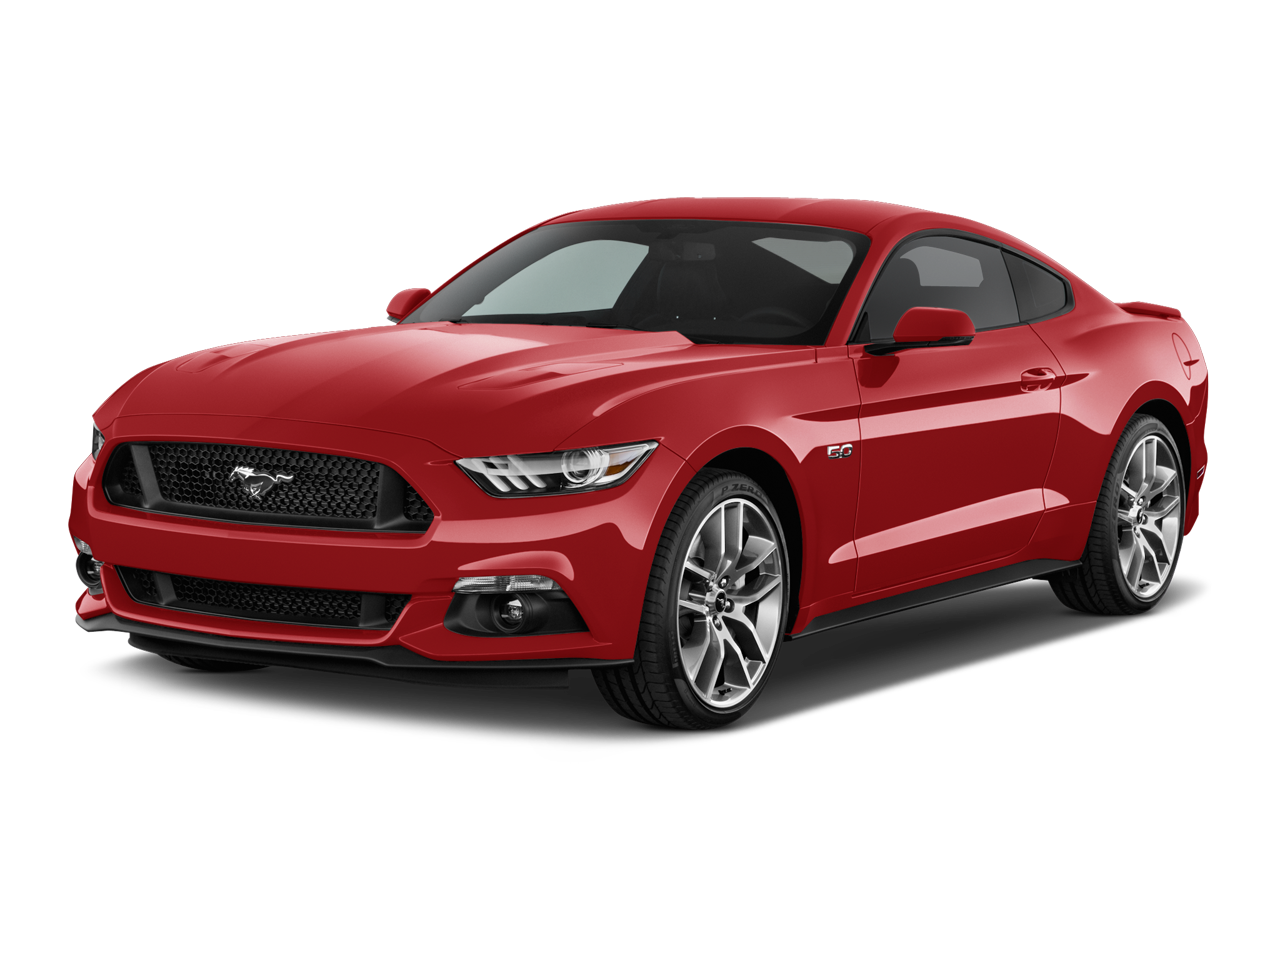 new mustang for sale newins bay shore ford. Black Bedroom Furniture Sets. Home Design Ideas